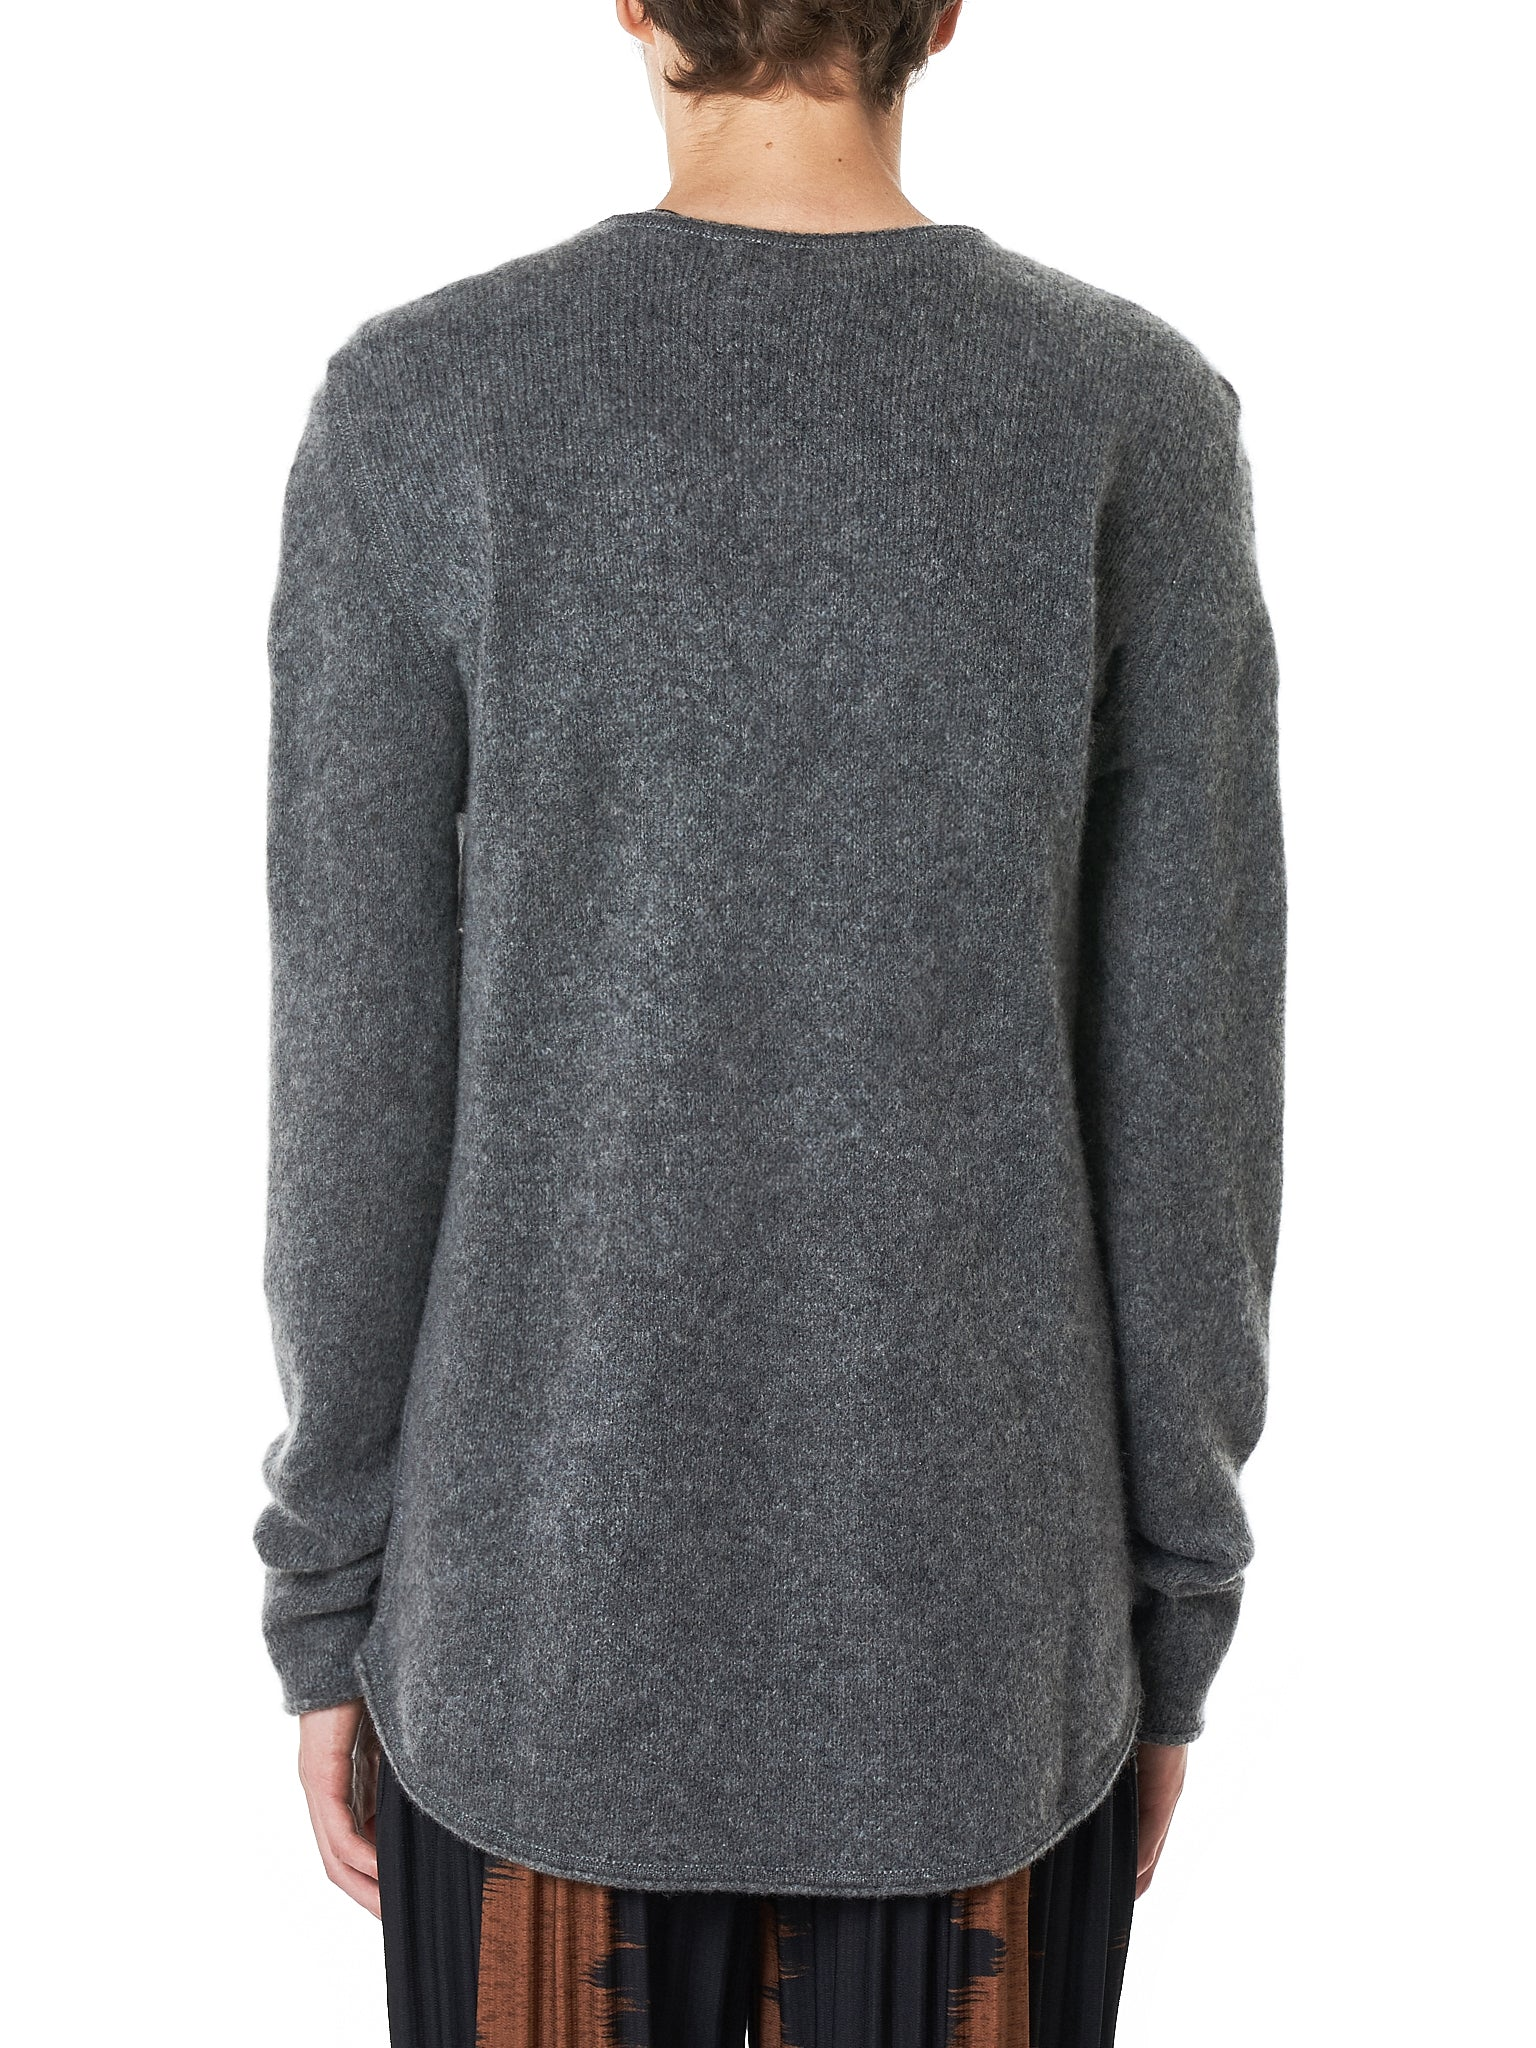 Denis Colomb Sweater - Hlorenzo Back